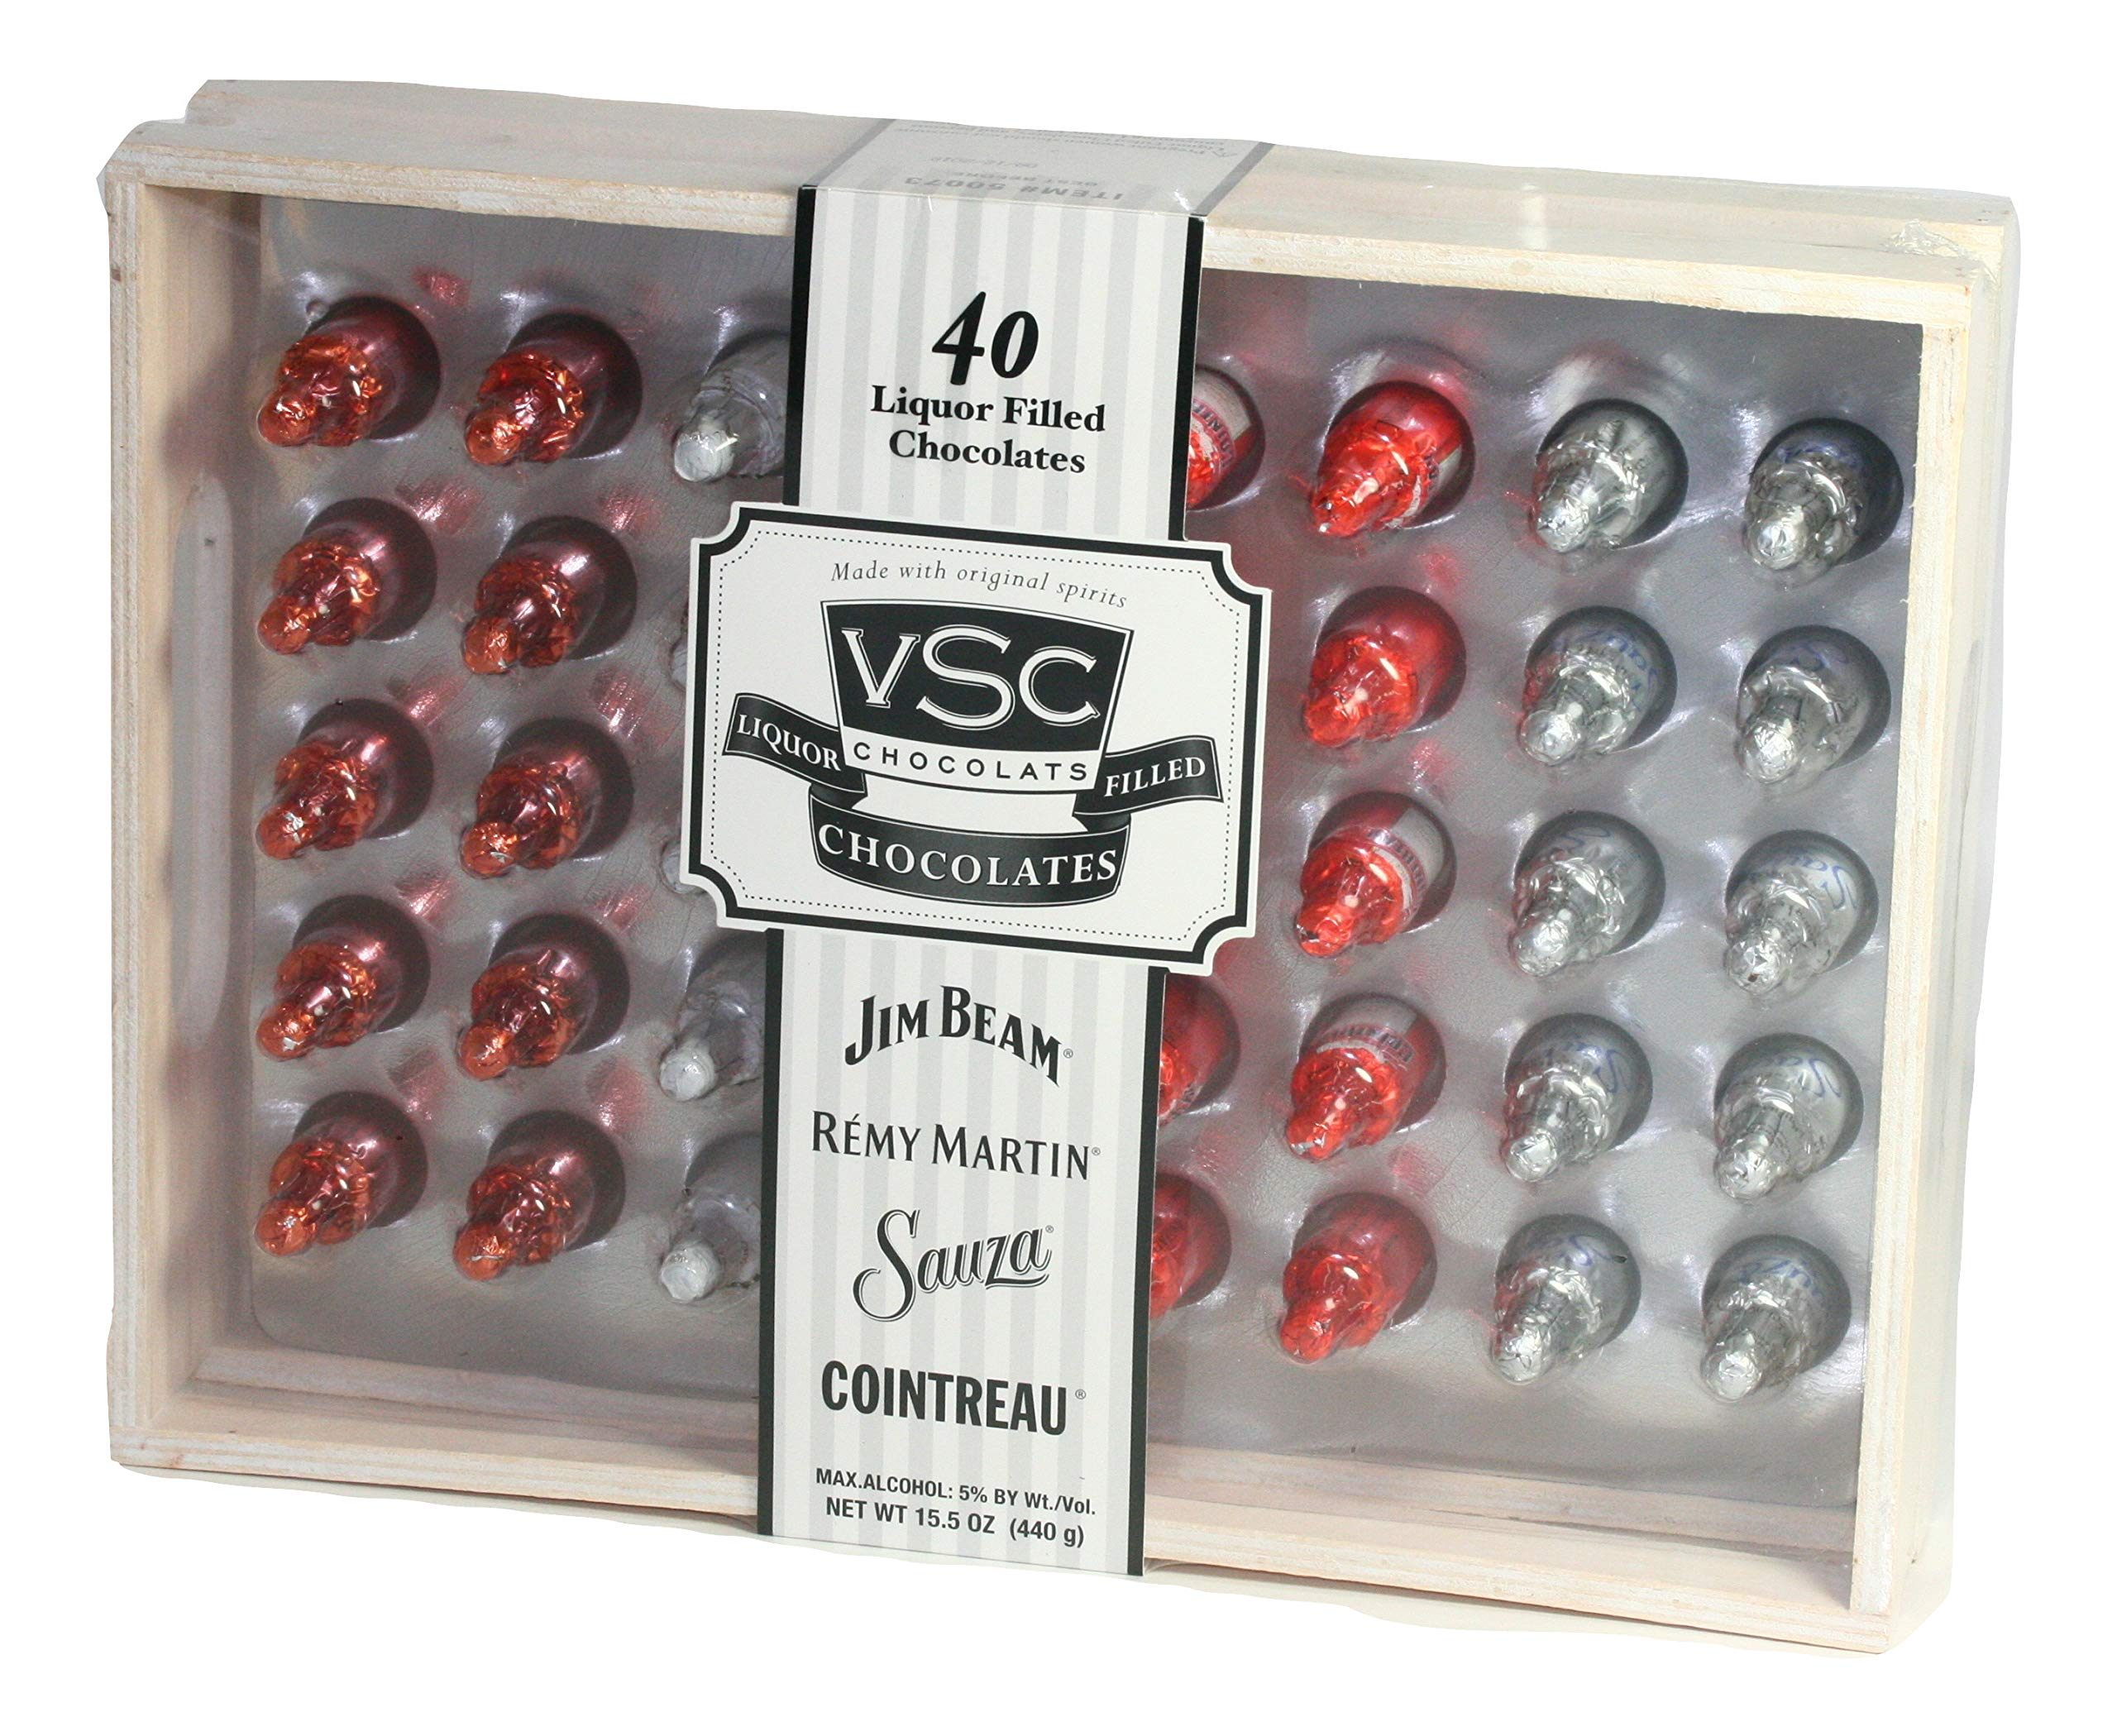 VSC Liquor Chocolates (40 ct.)  A1